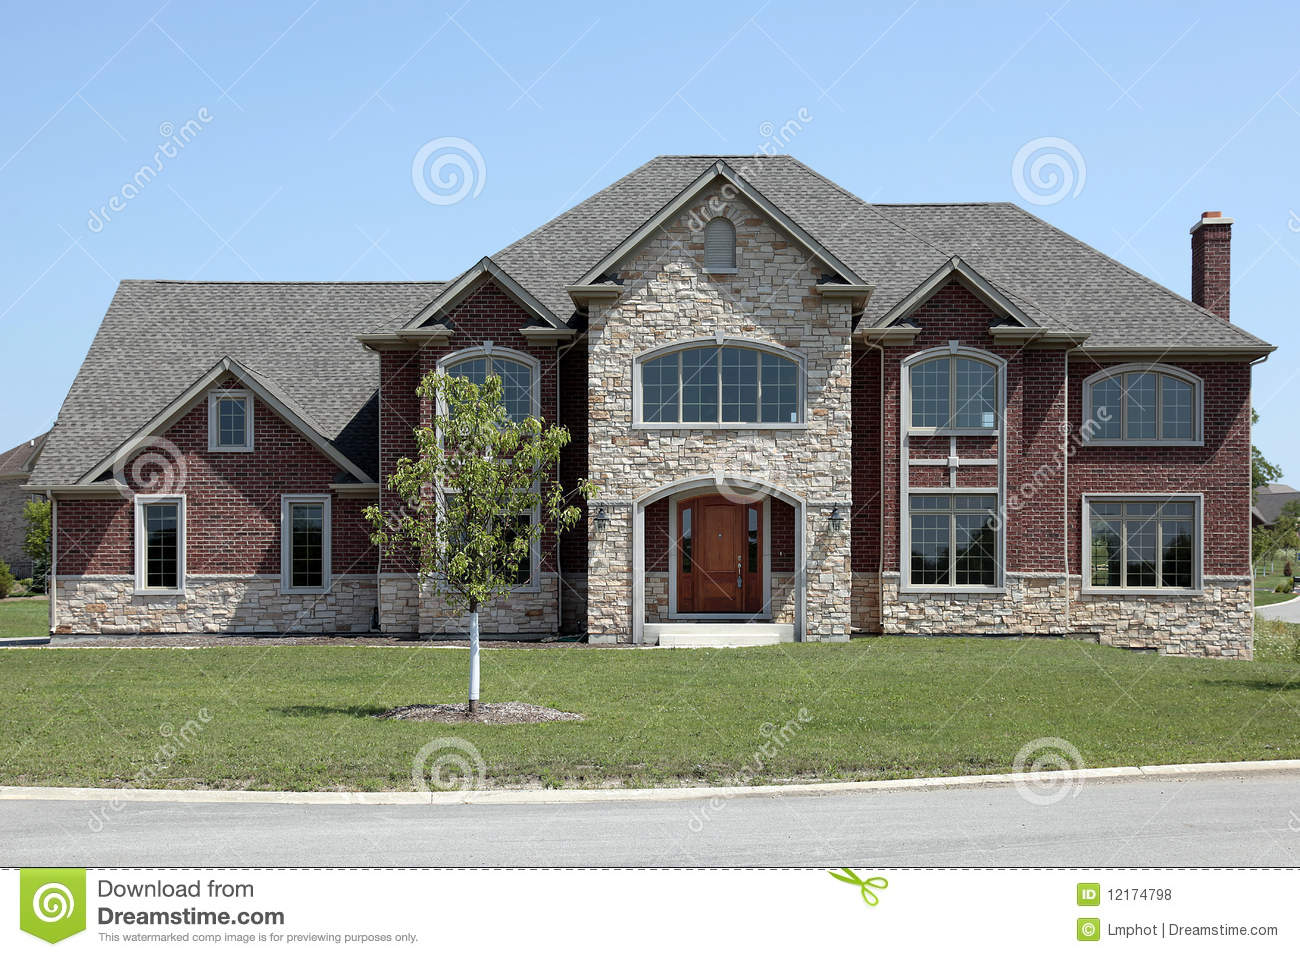 New Construction Brick And Stone Home Royalty Free Stock